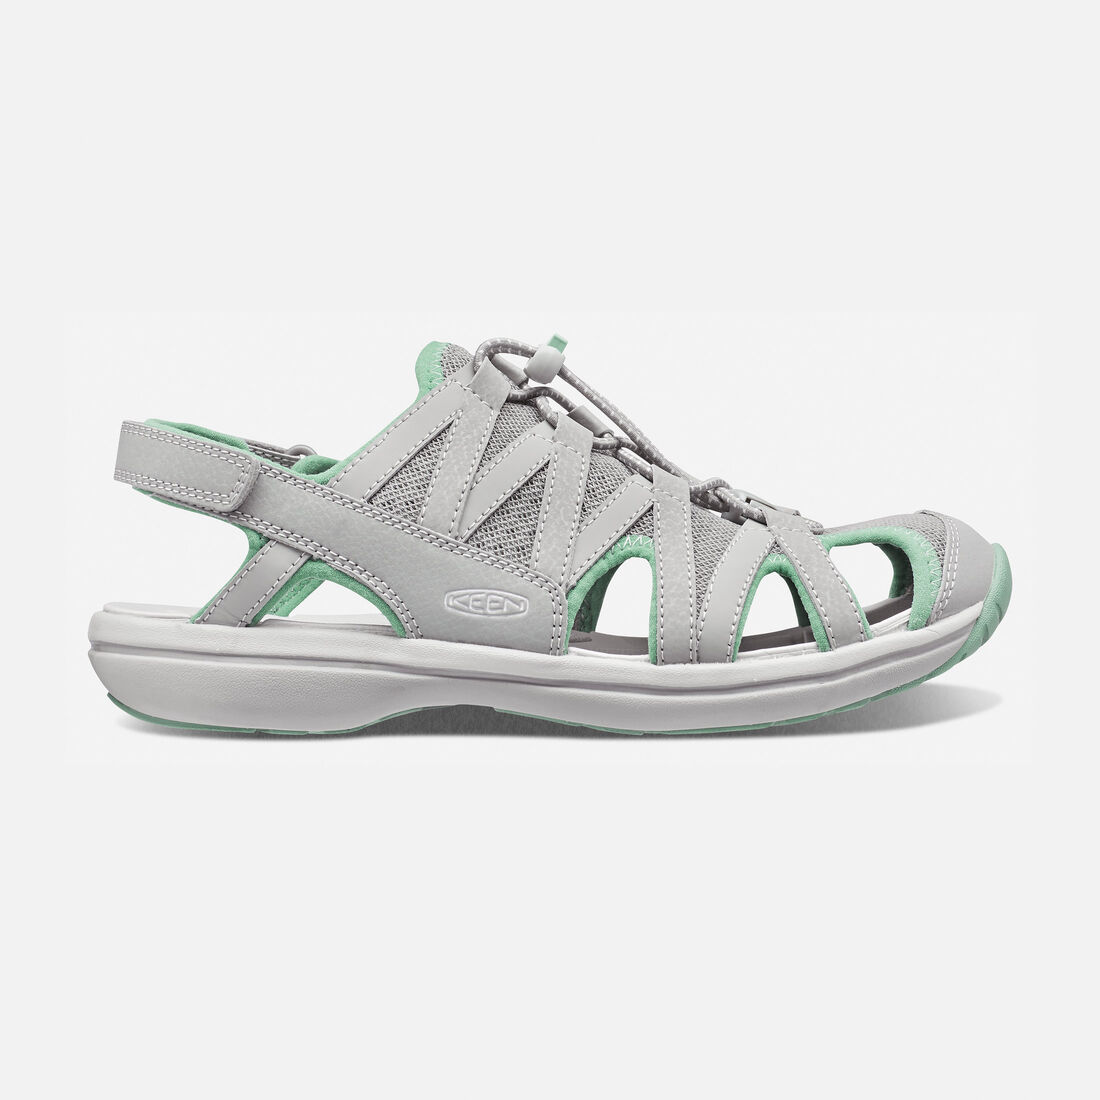 Women's Sage Sandal in Neutral Gray/Malachite - large view.